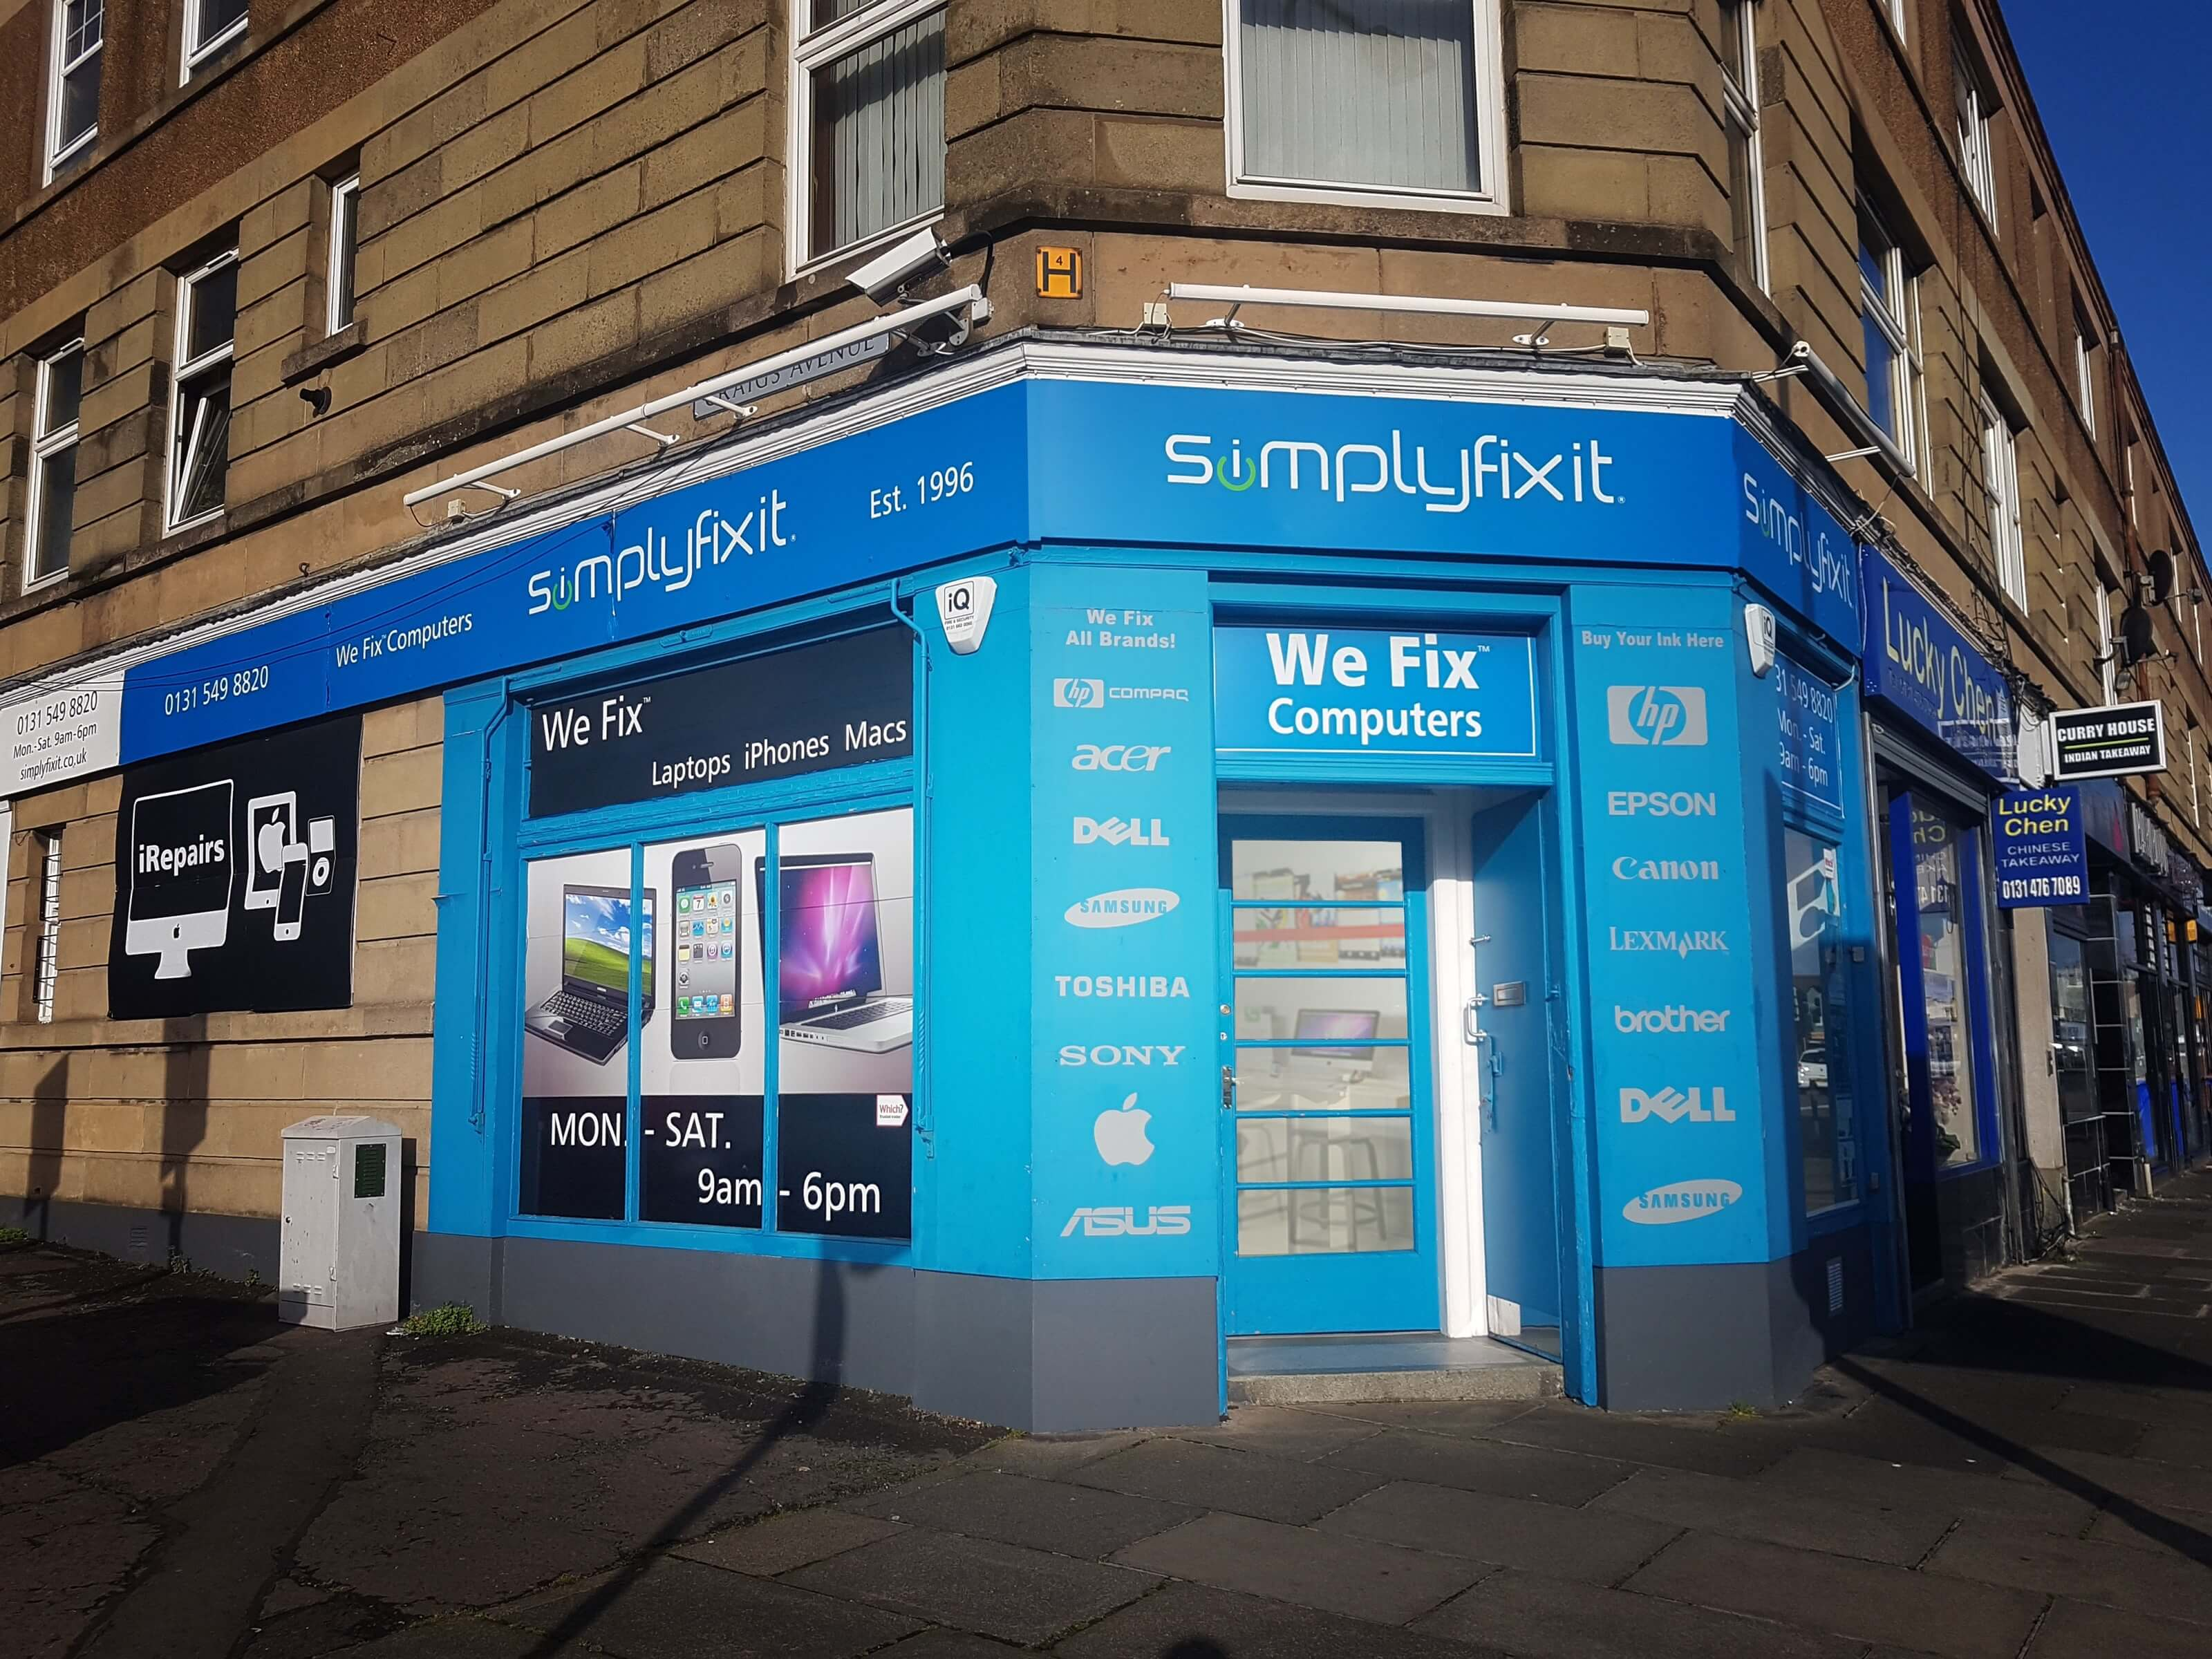 SimplyFixIt at Glasgow Road, Corstorphine.